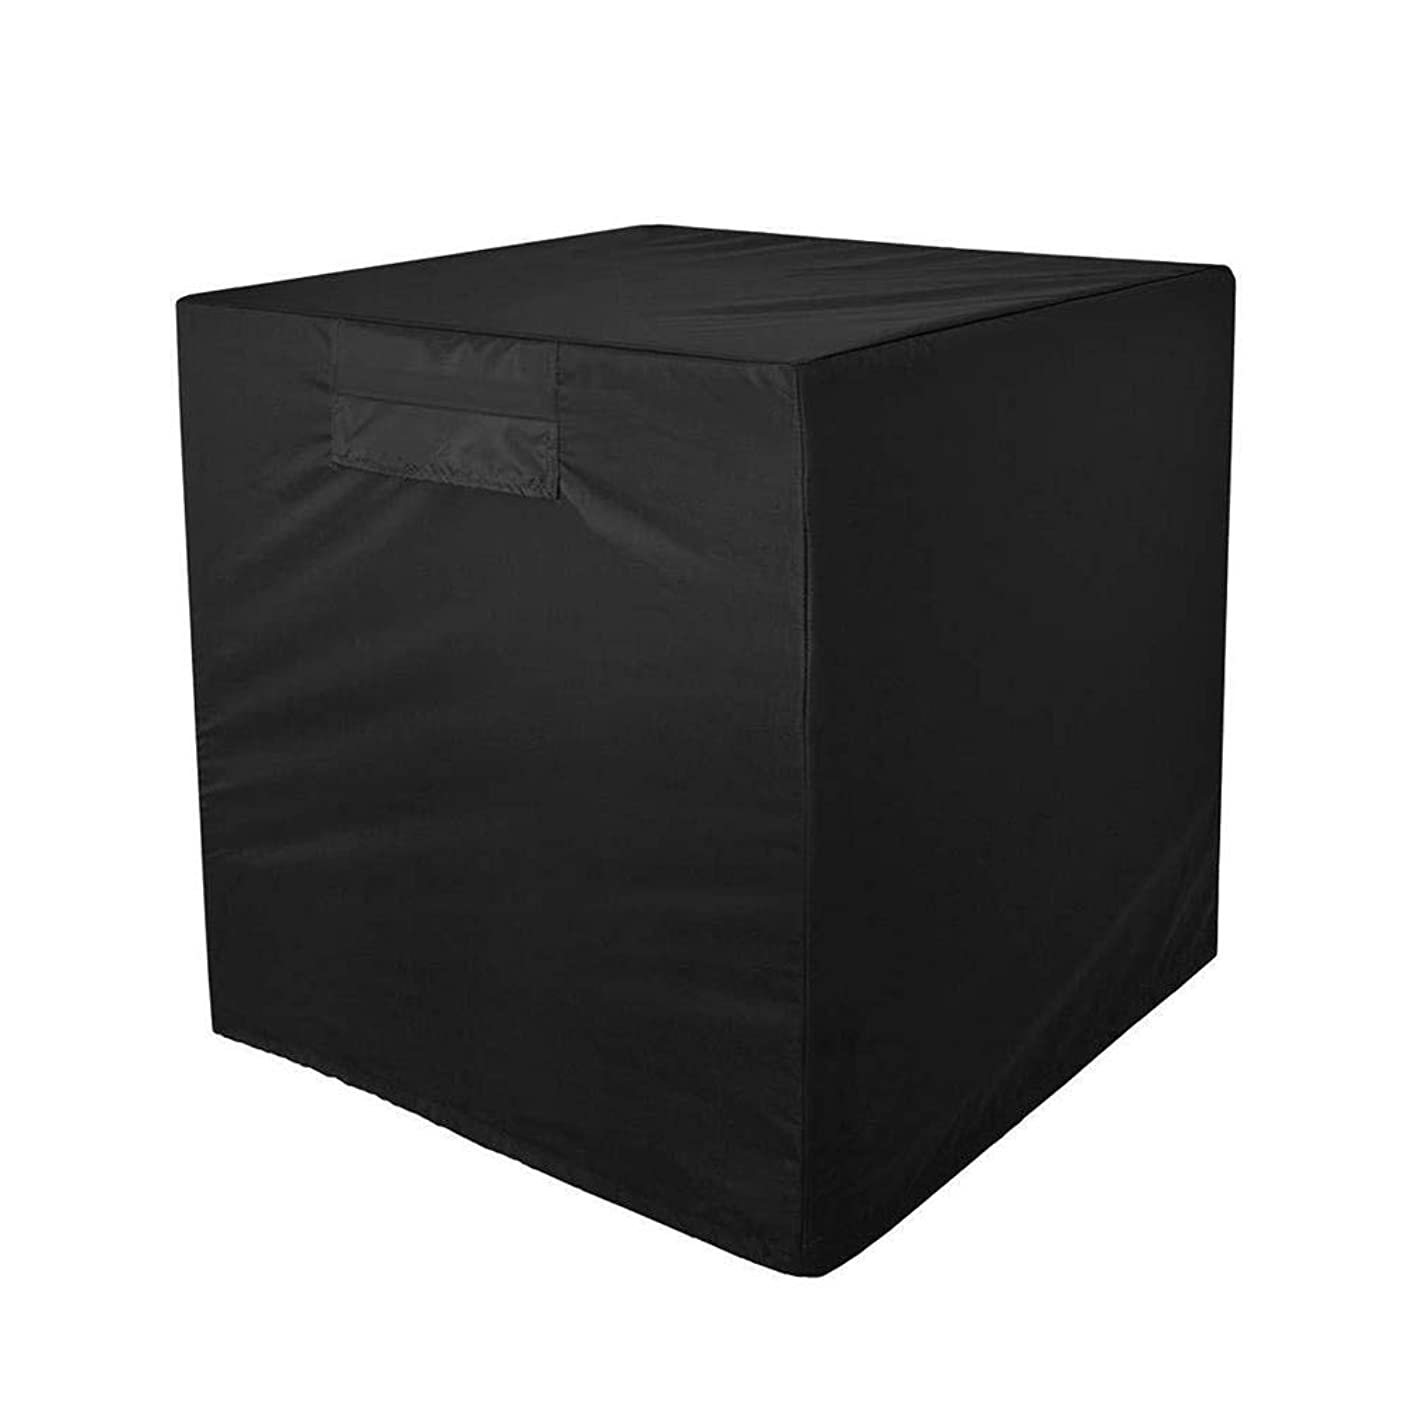 Wenini Air Conditioner Cover Outdoor Protective Cover Case Dust Net Cooling Fan Cover for Standard American Furniture Central Air Conditioner Outdoor Vent Full Cover (Square) Black (24x24x22 inch)